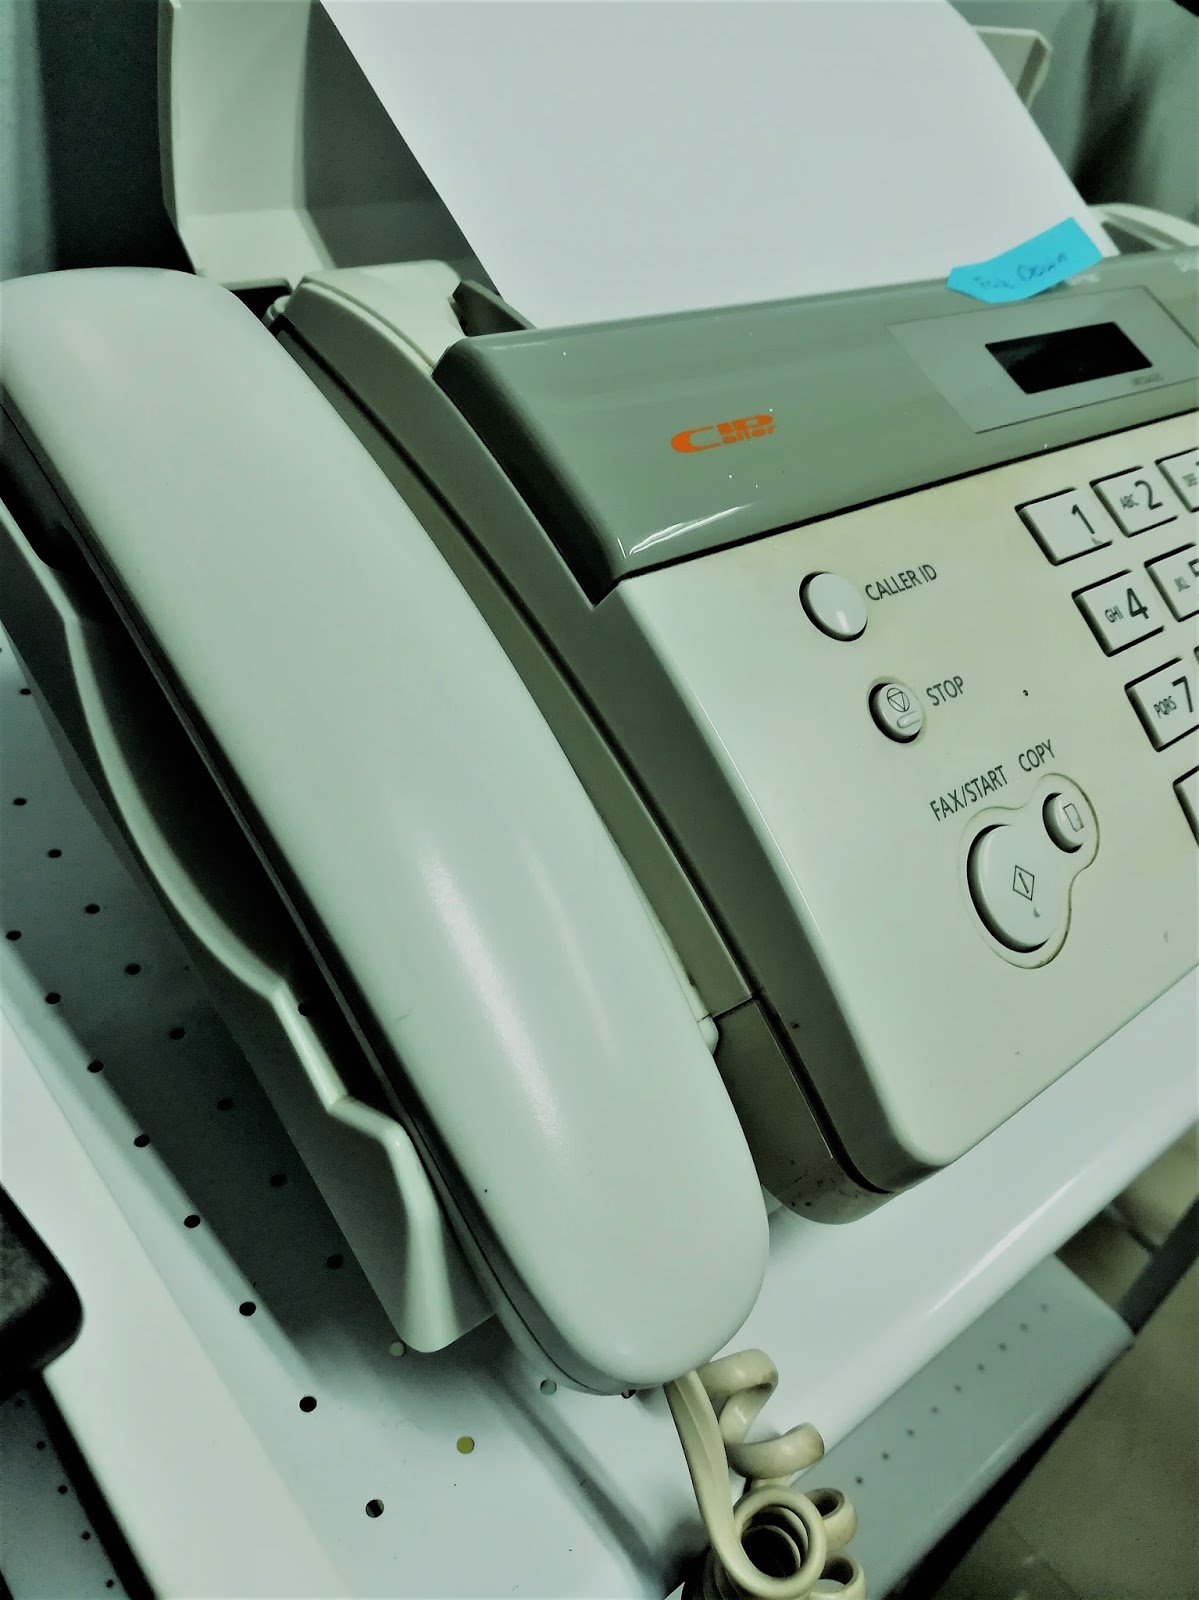 medium resolution of talkless simple steps to send fax message using fax machine